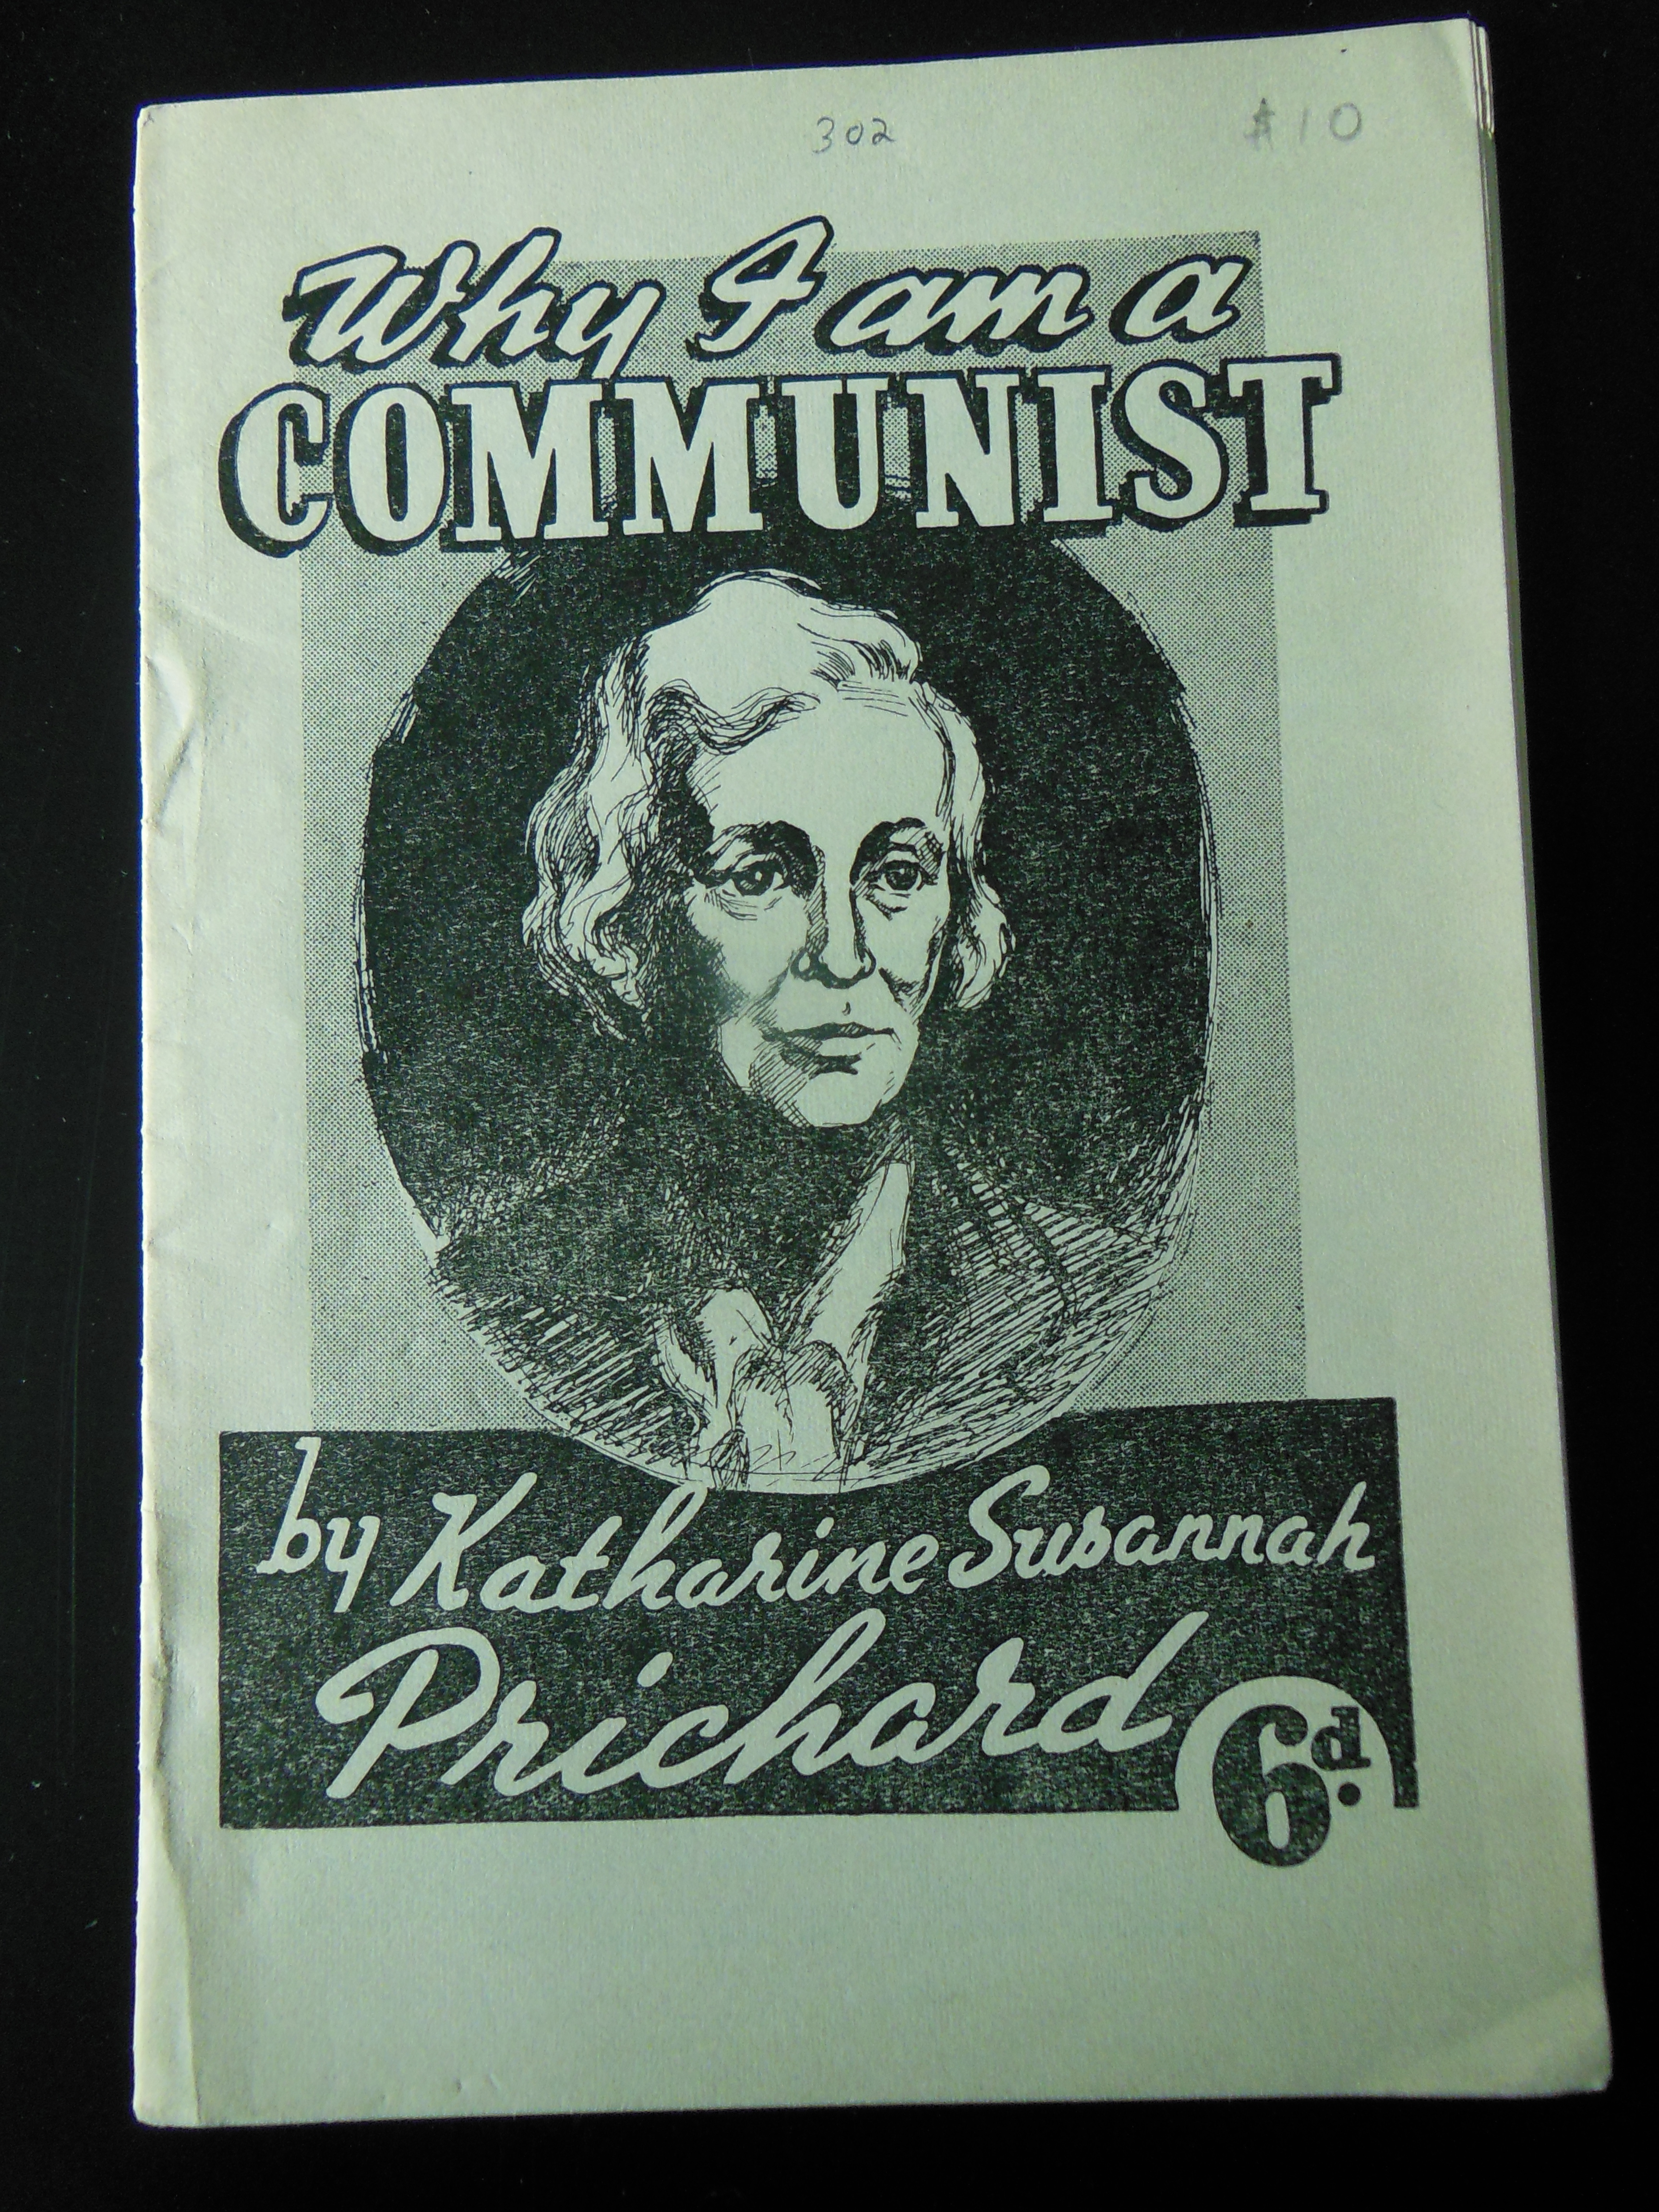 Need to find communist authors?